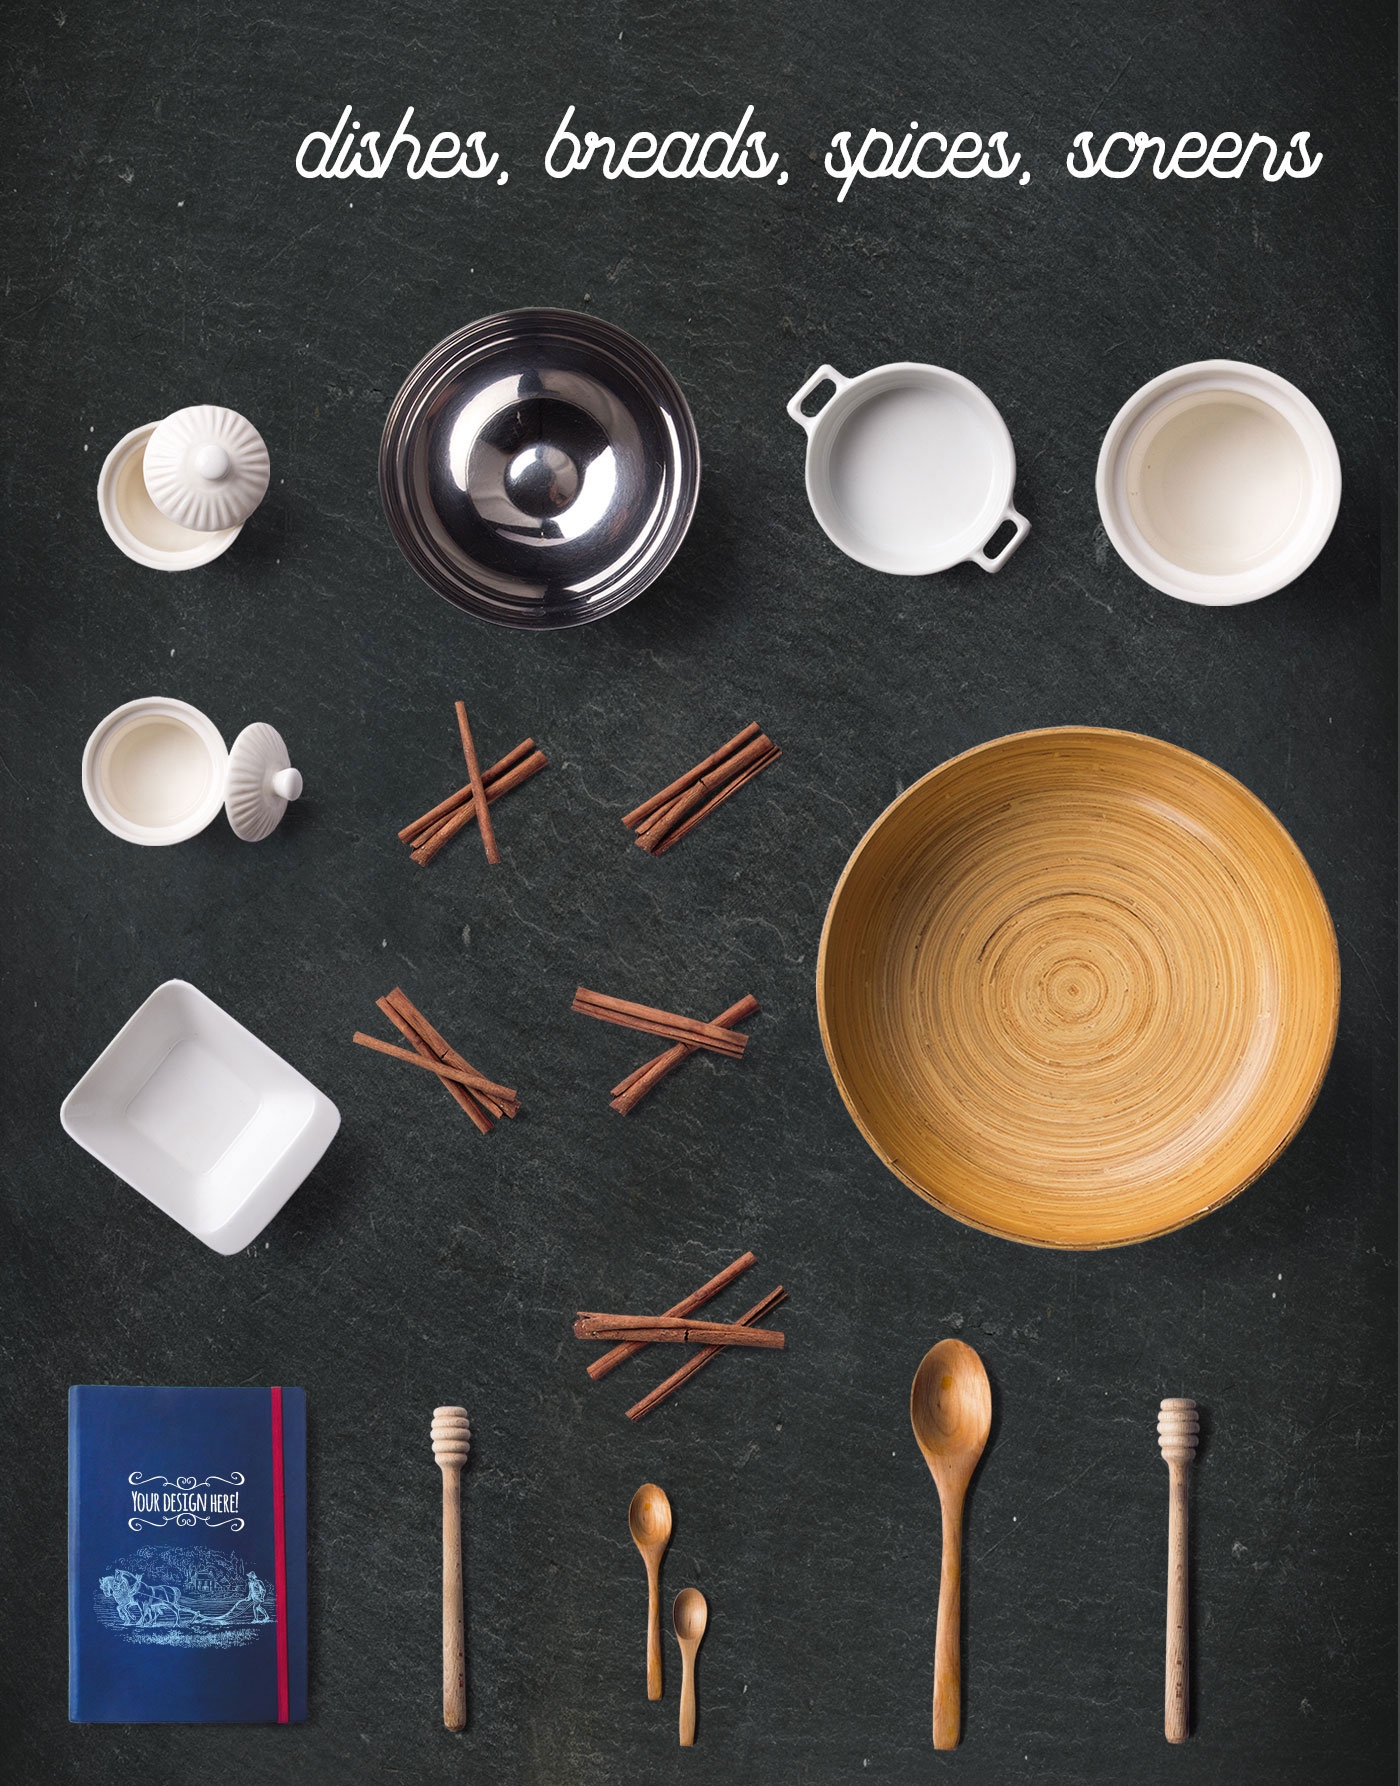 Wooden spoons and cinnamon sticks